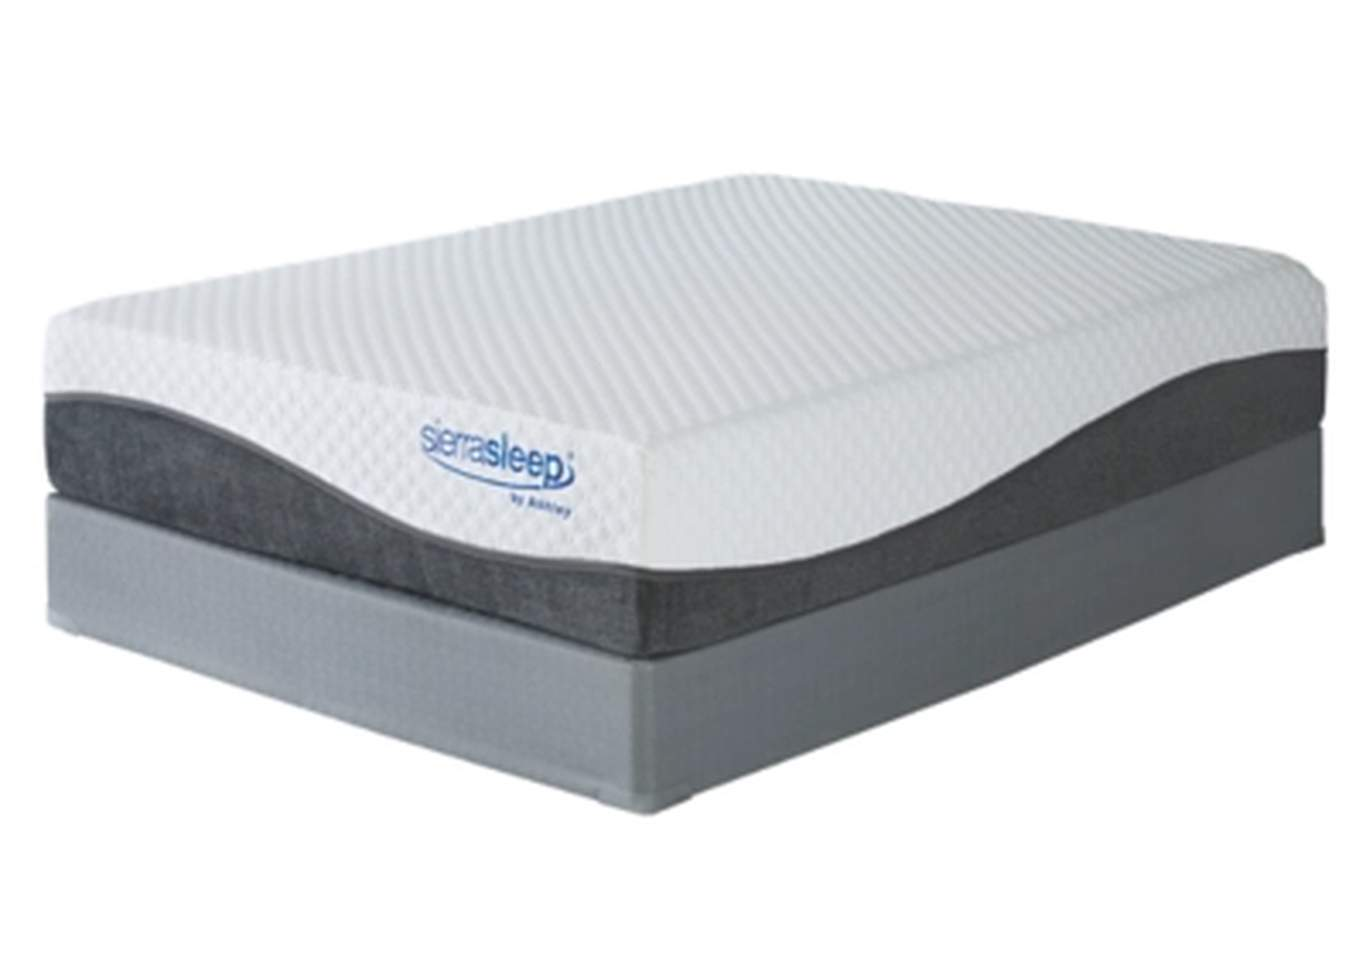 Mygel Hybrid 1300 Queen Mattress w/Foundation,Sierra Sleep by Ashley